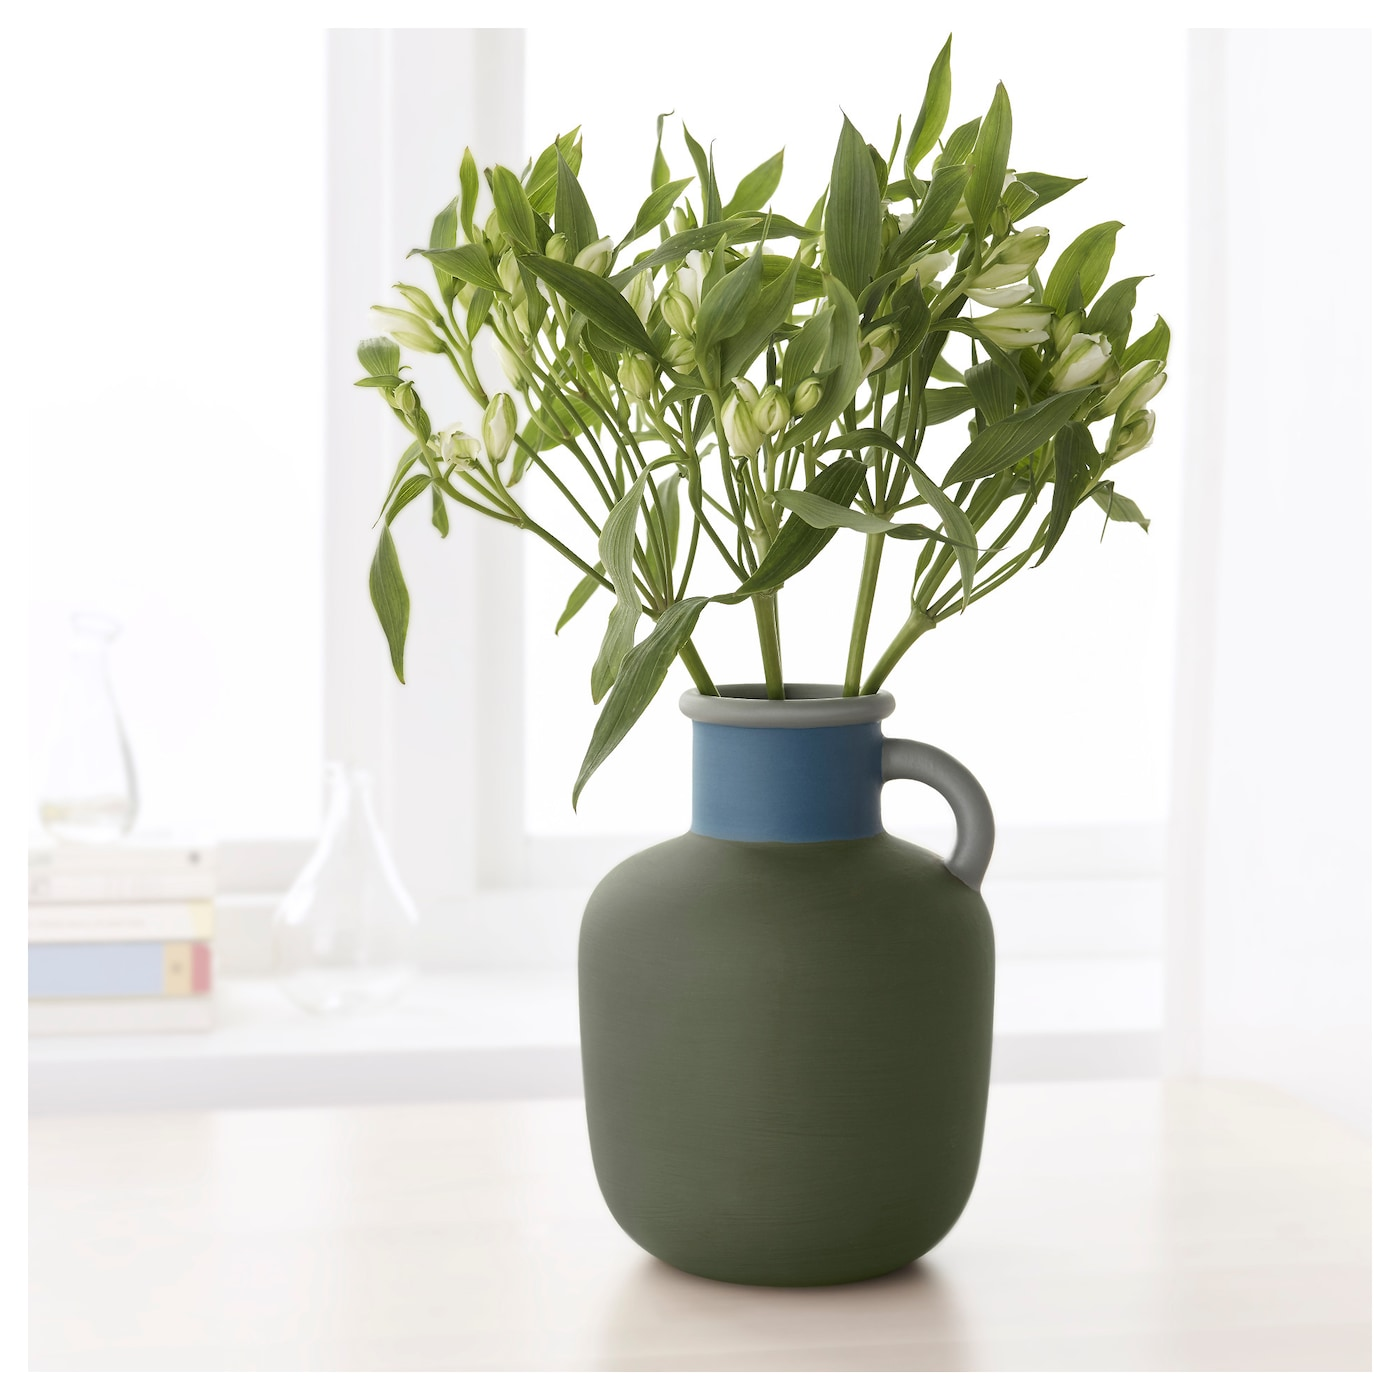 ypperlig vase green 23 cm ikea. Black Bedroom Furniture Sets. Home Design Ideas